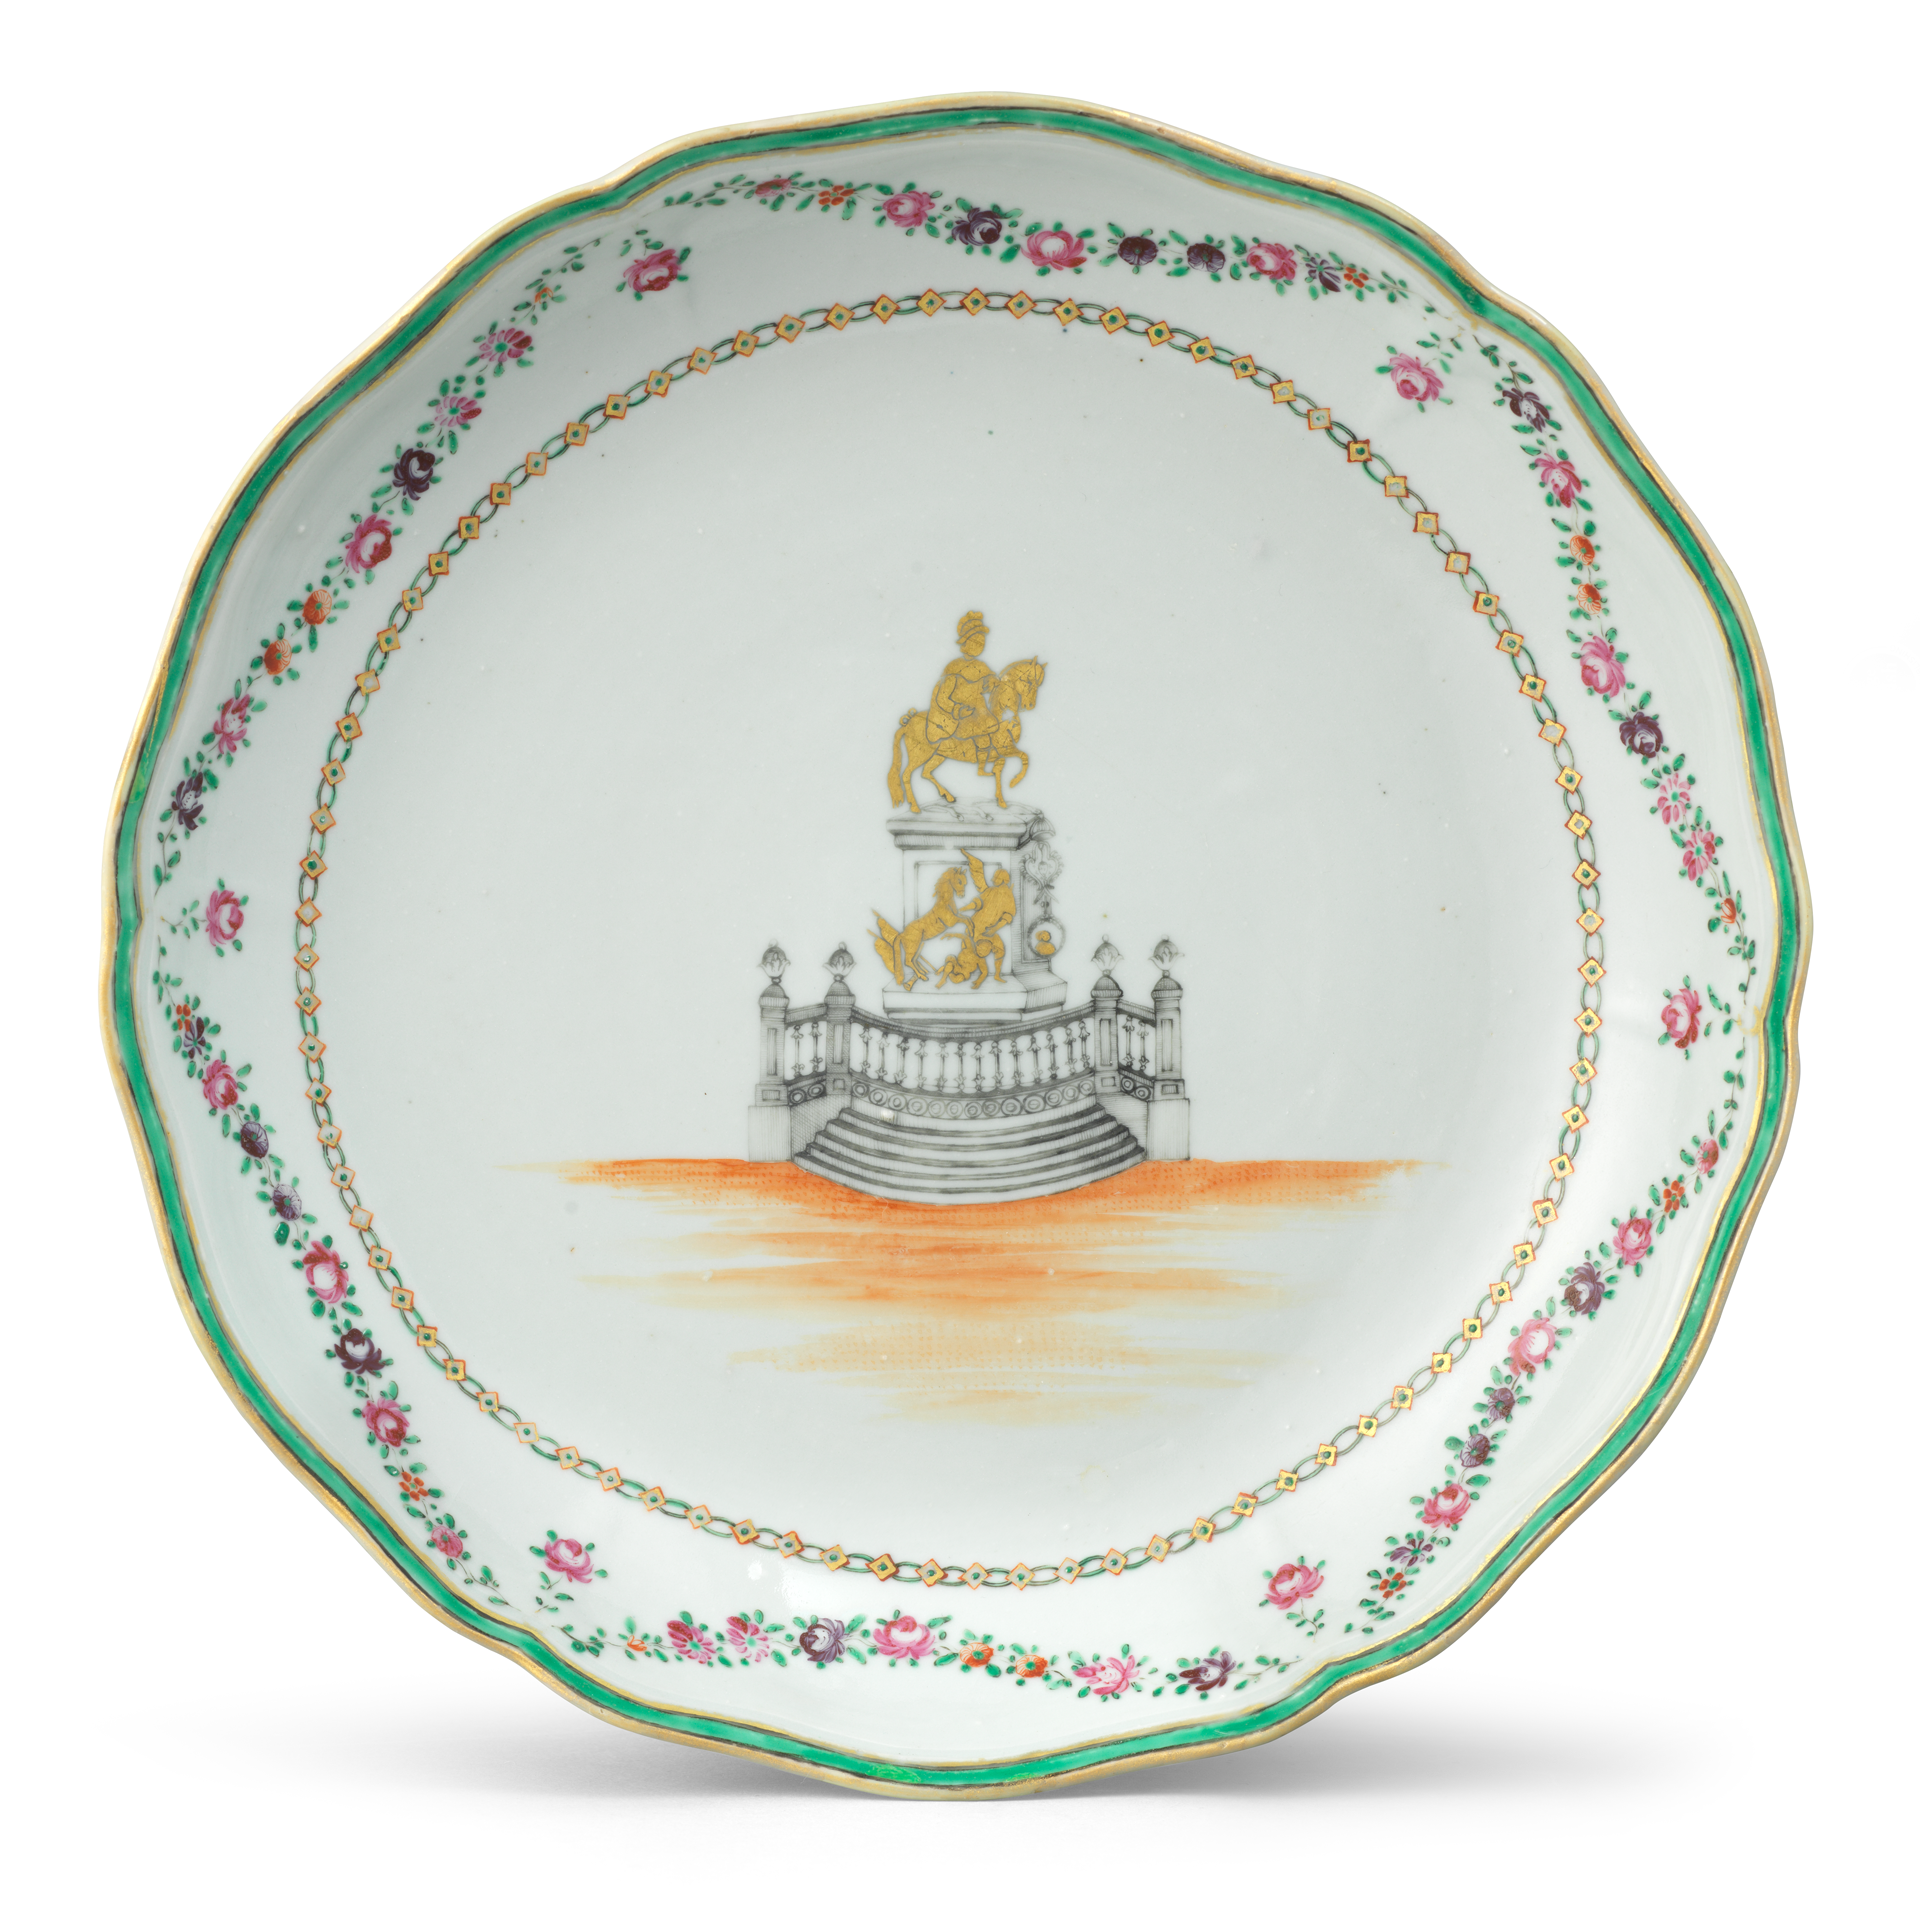 Saucer with the Equestrian Statue of Joseph I of Portugal, Porcelain decorated in overglaze polychrome enamels, grisaille, and gold, Qianlong period (1736-1795), ca. 1773